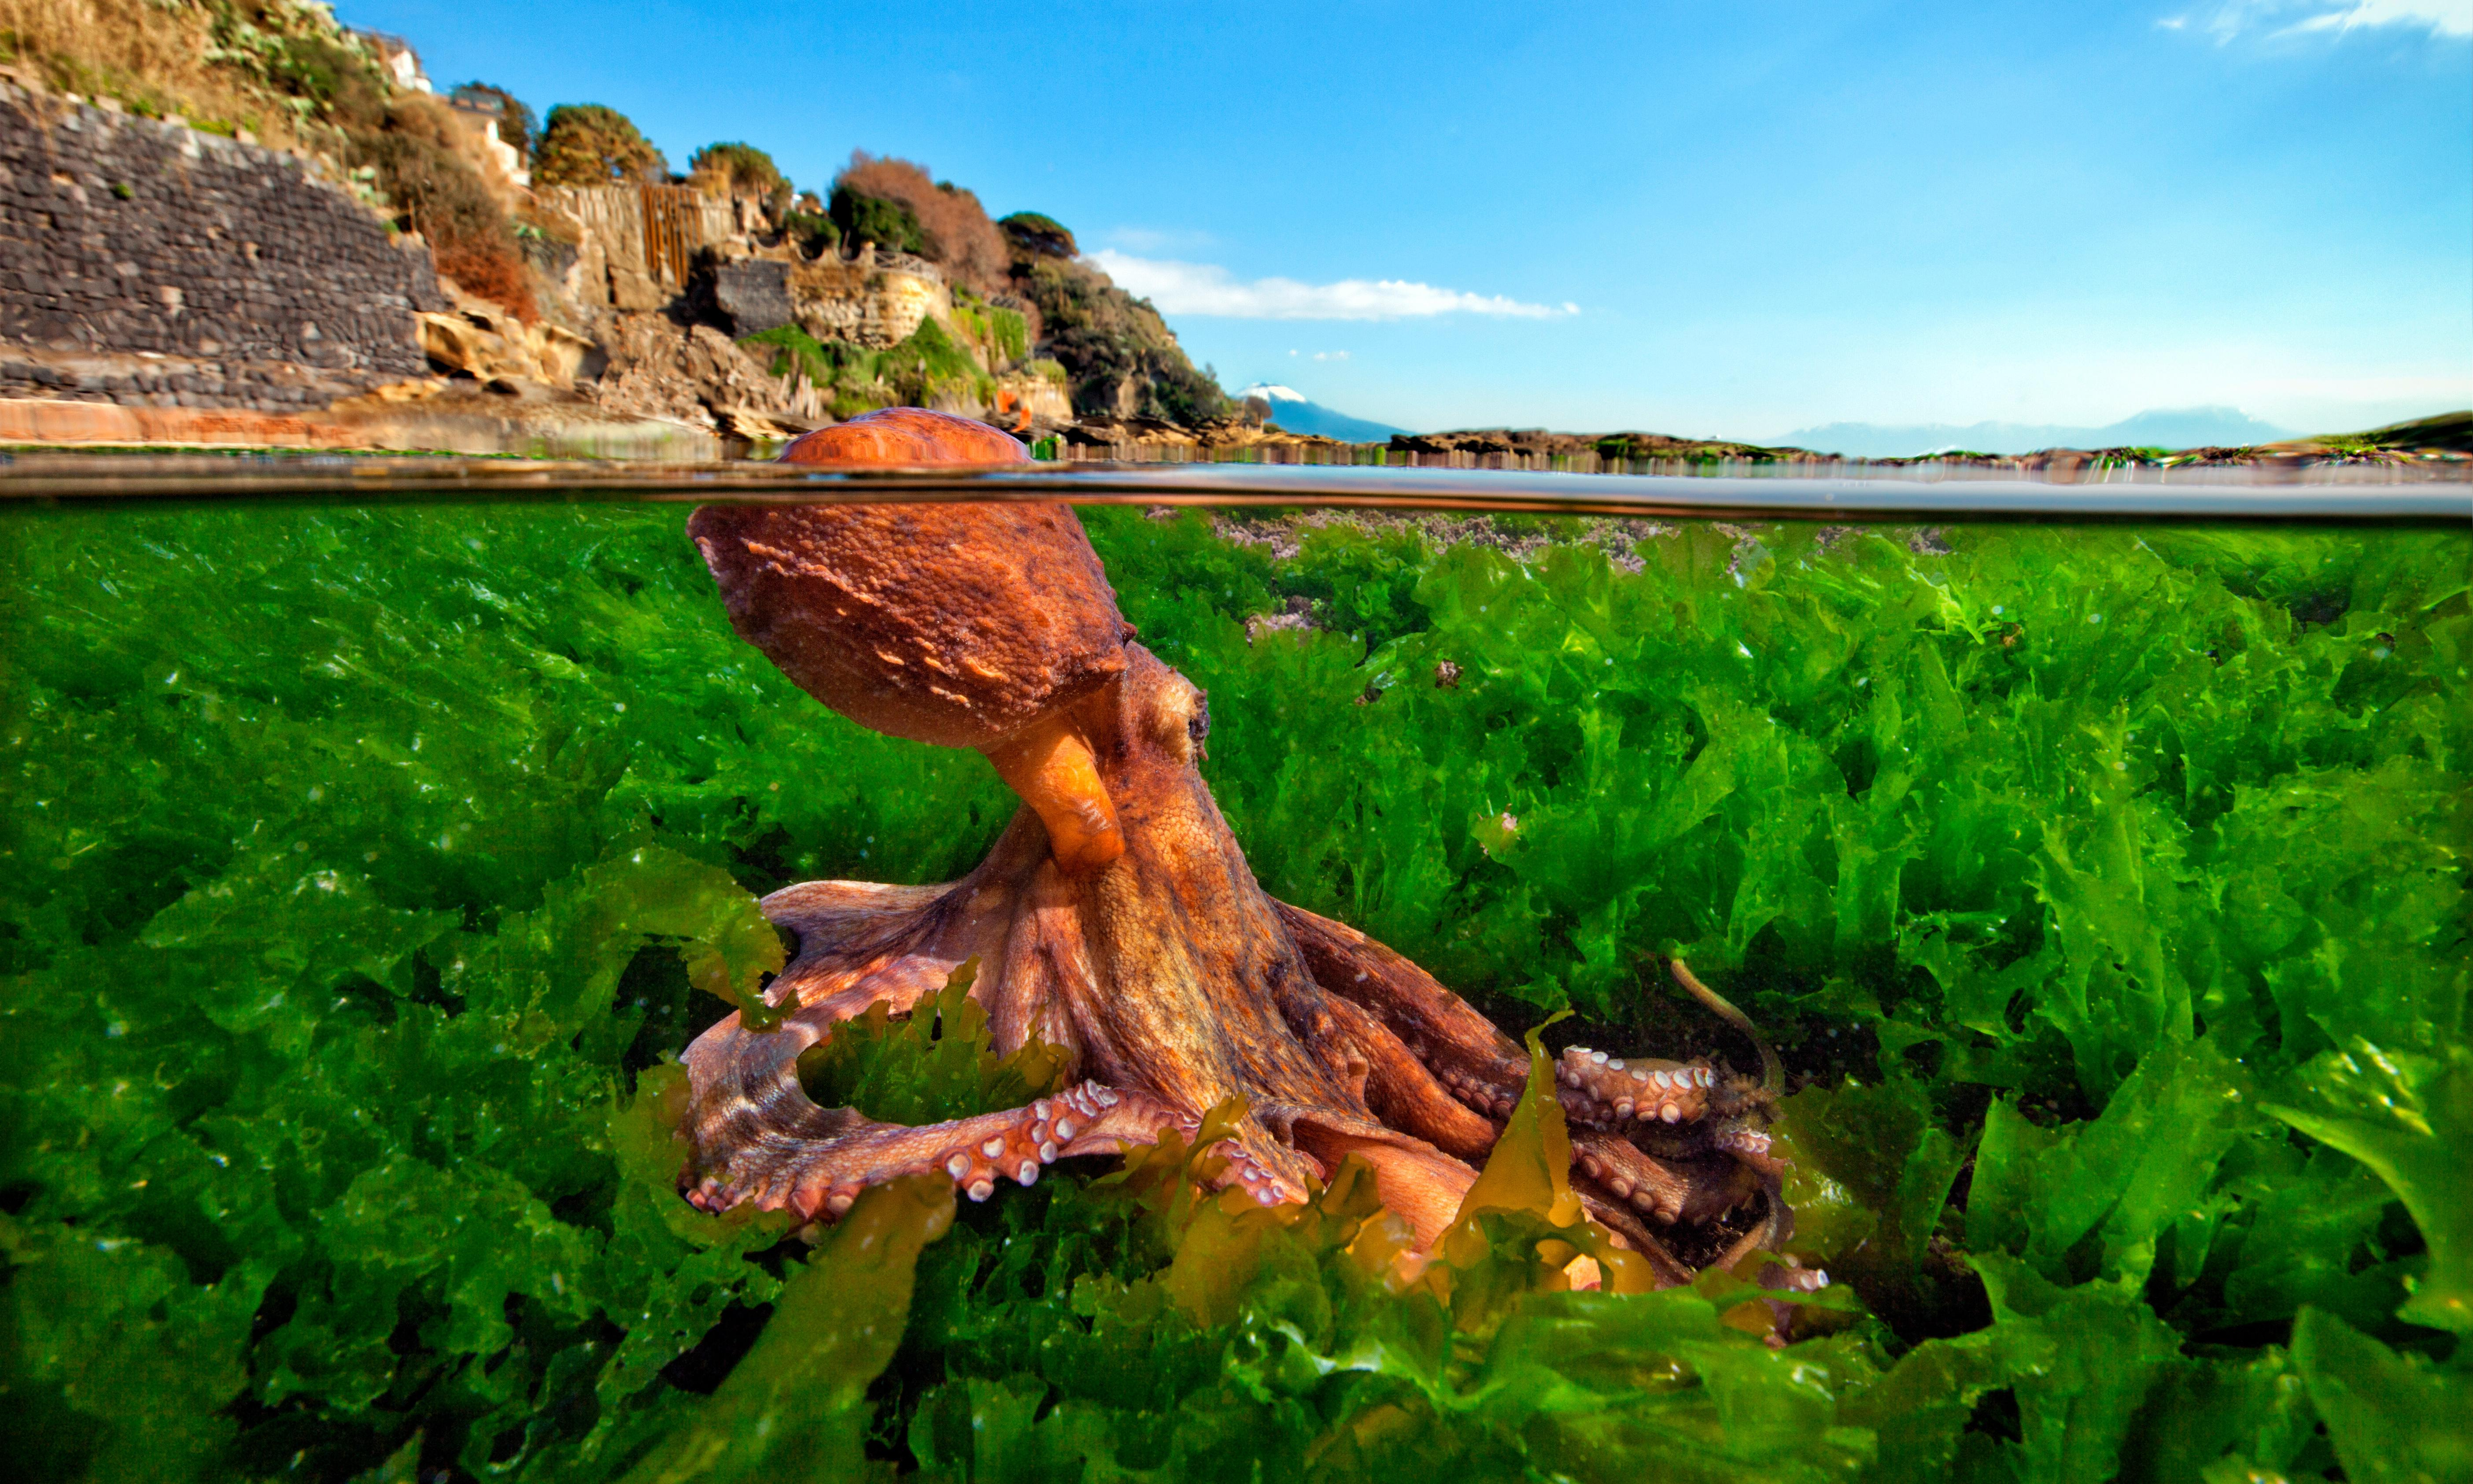 Why are attitudes to meat so complex and personal? I draw the line at cephalopods